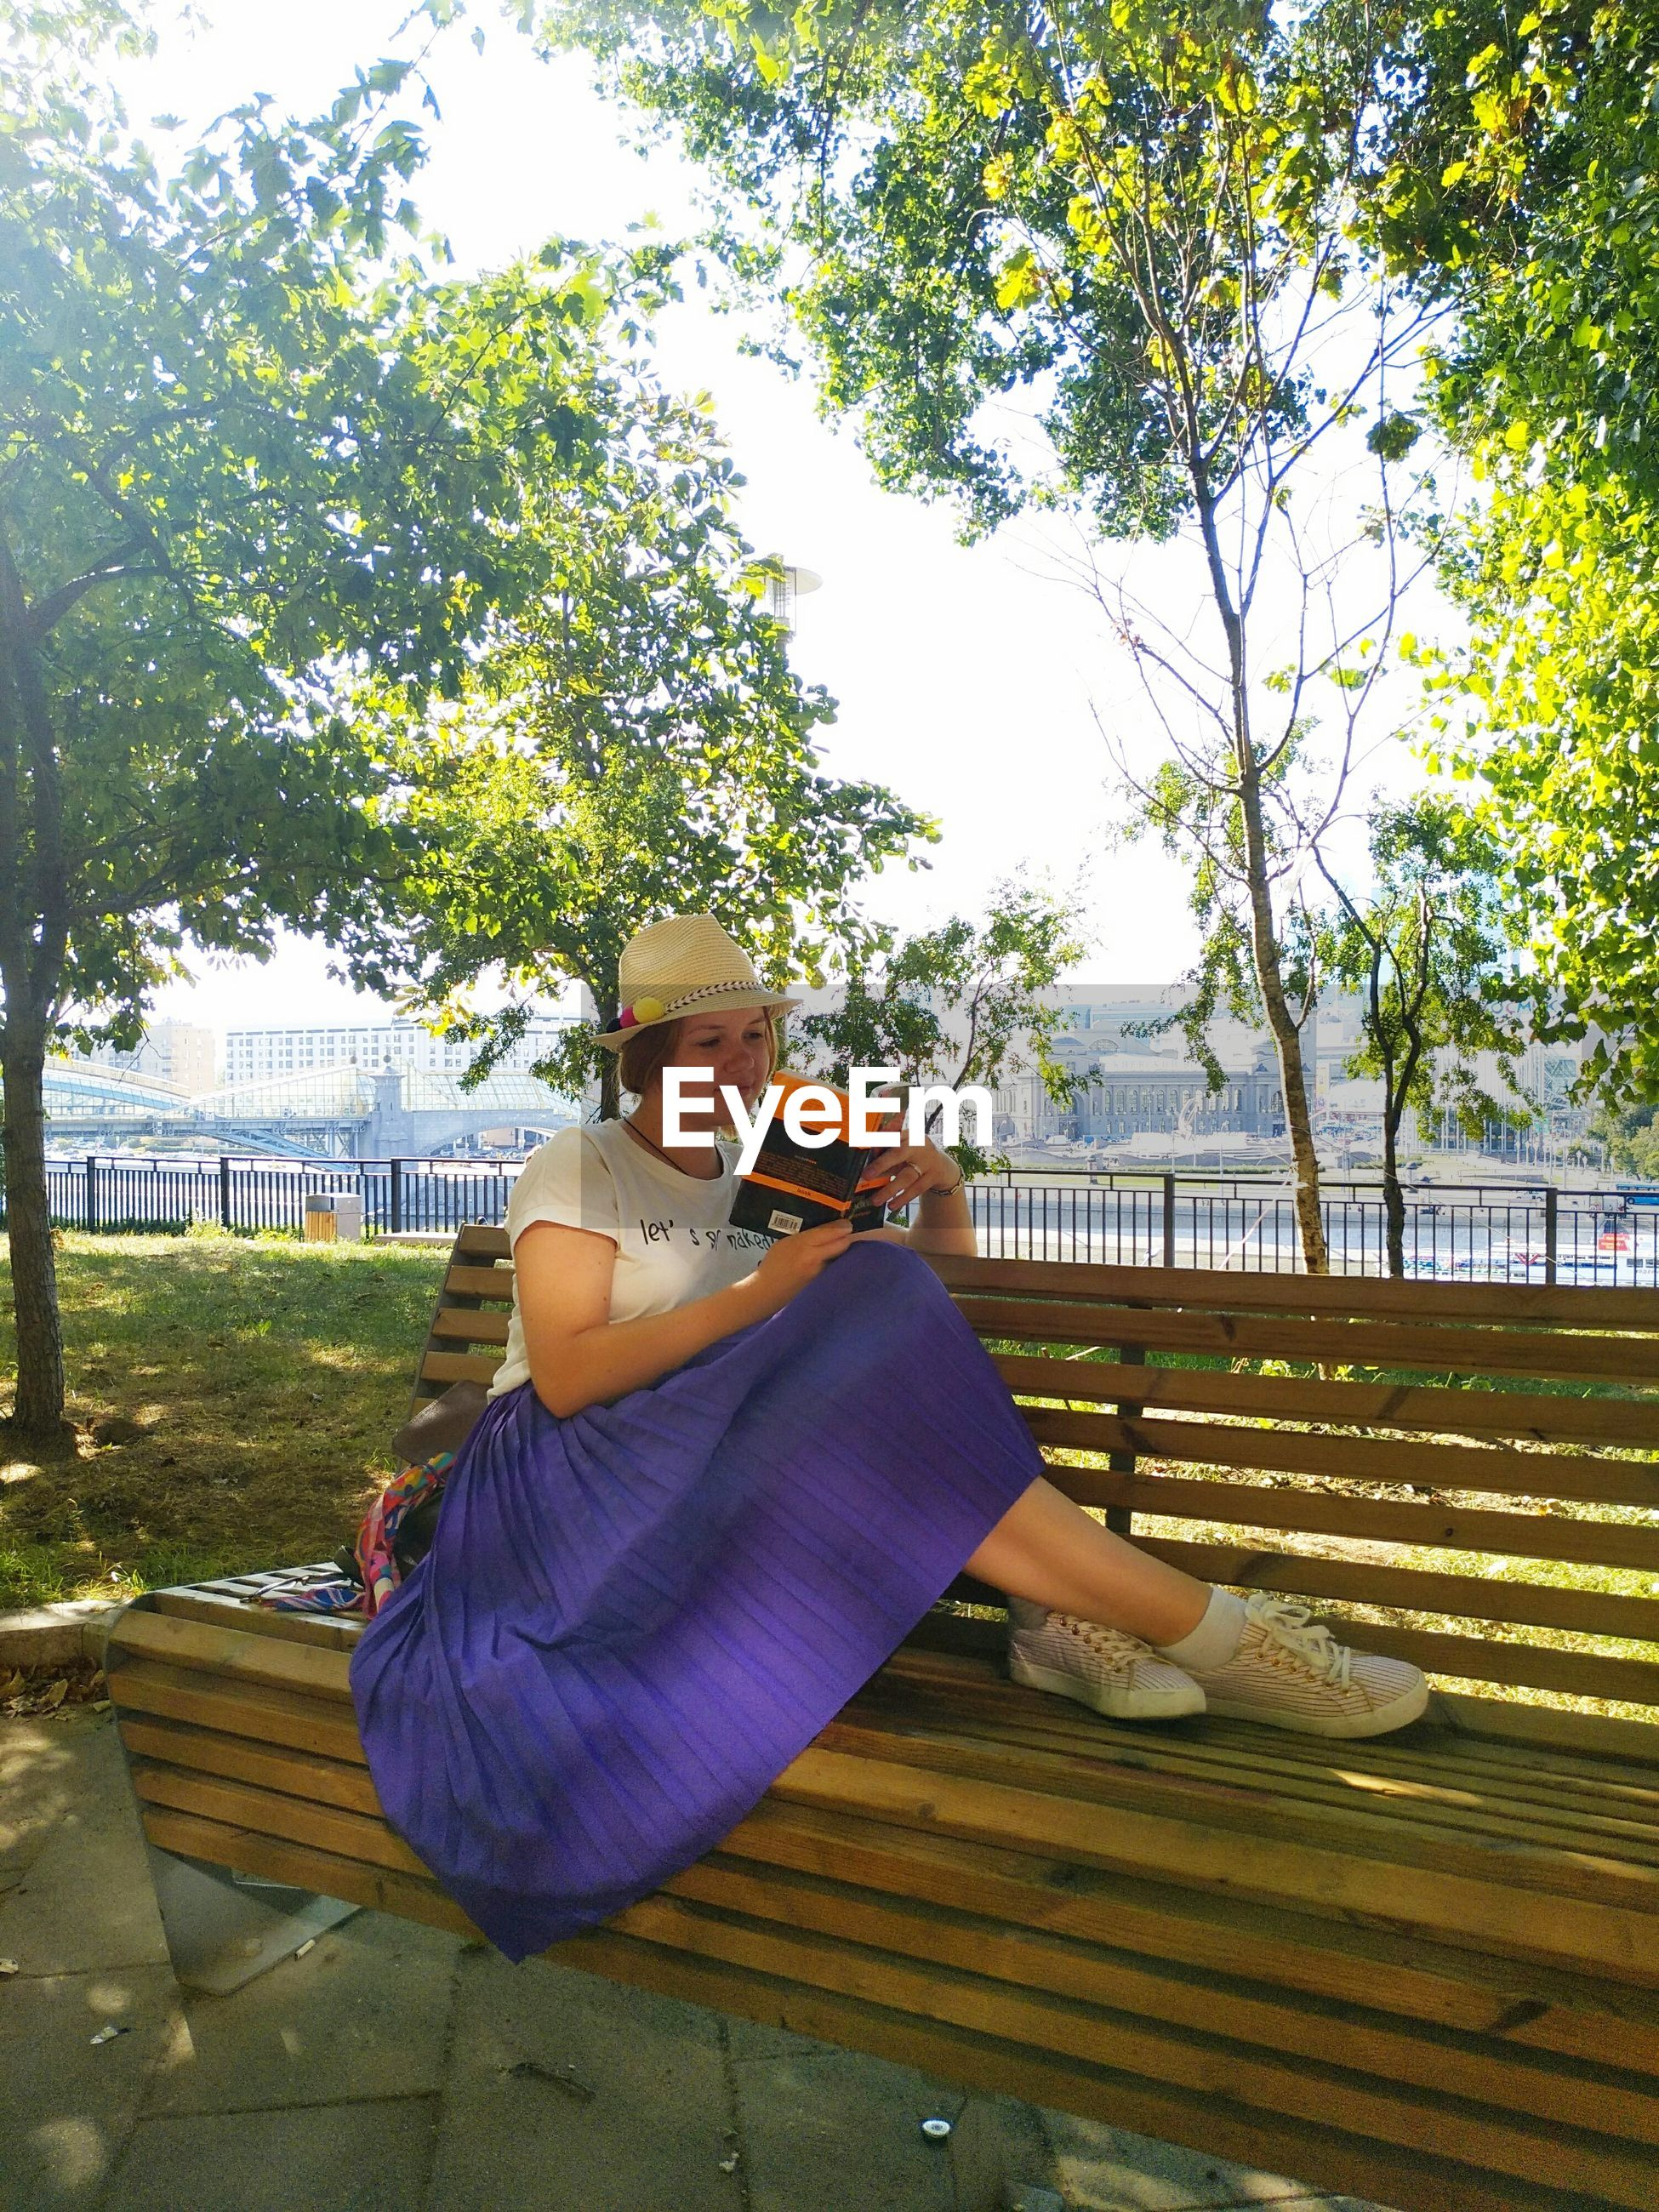 Woman reading book while sitting on bench in park